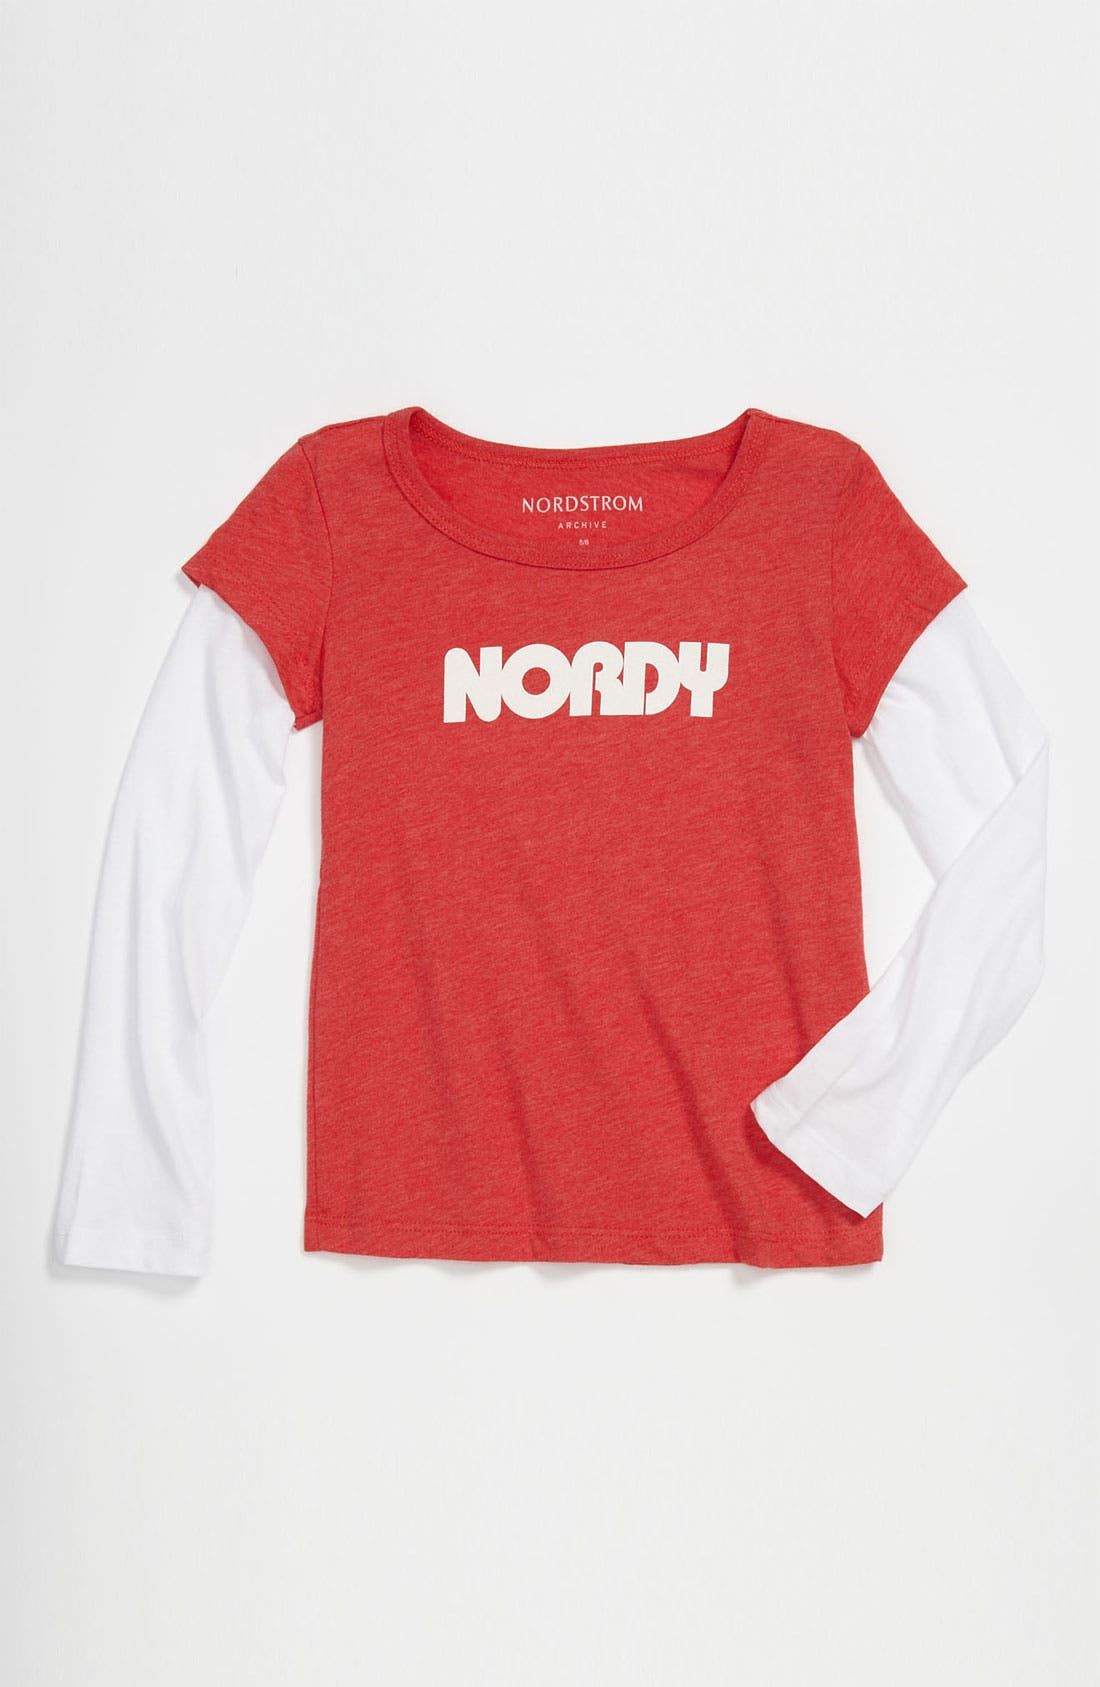 Alternate Image 1 Selected - Nordstrom 'Nordy' Tee (Toddler)